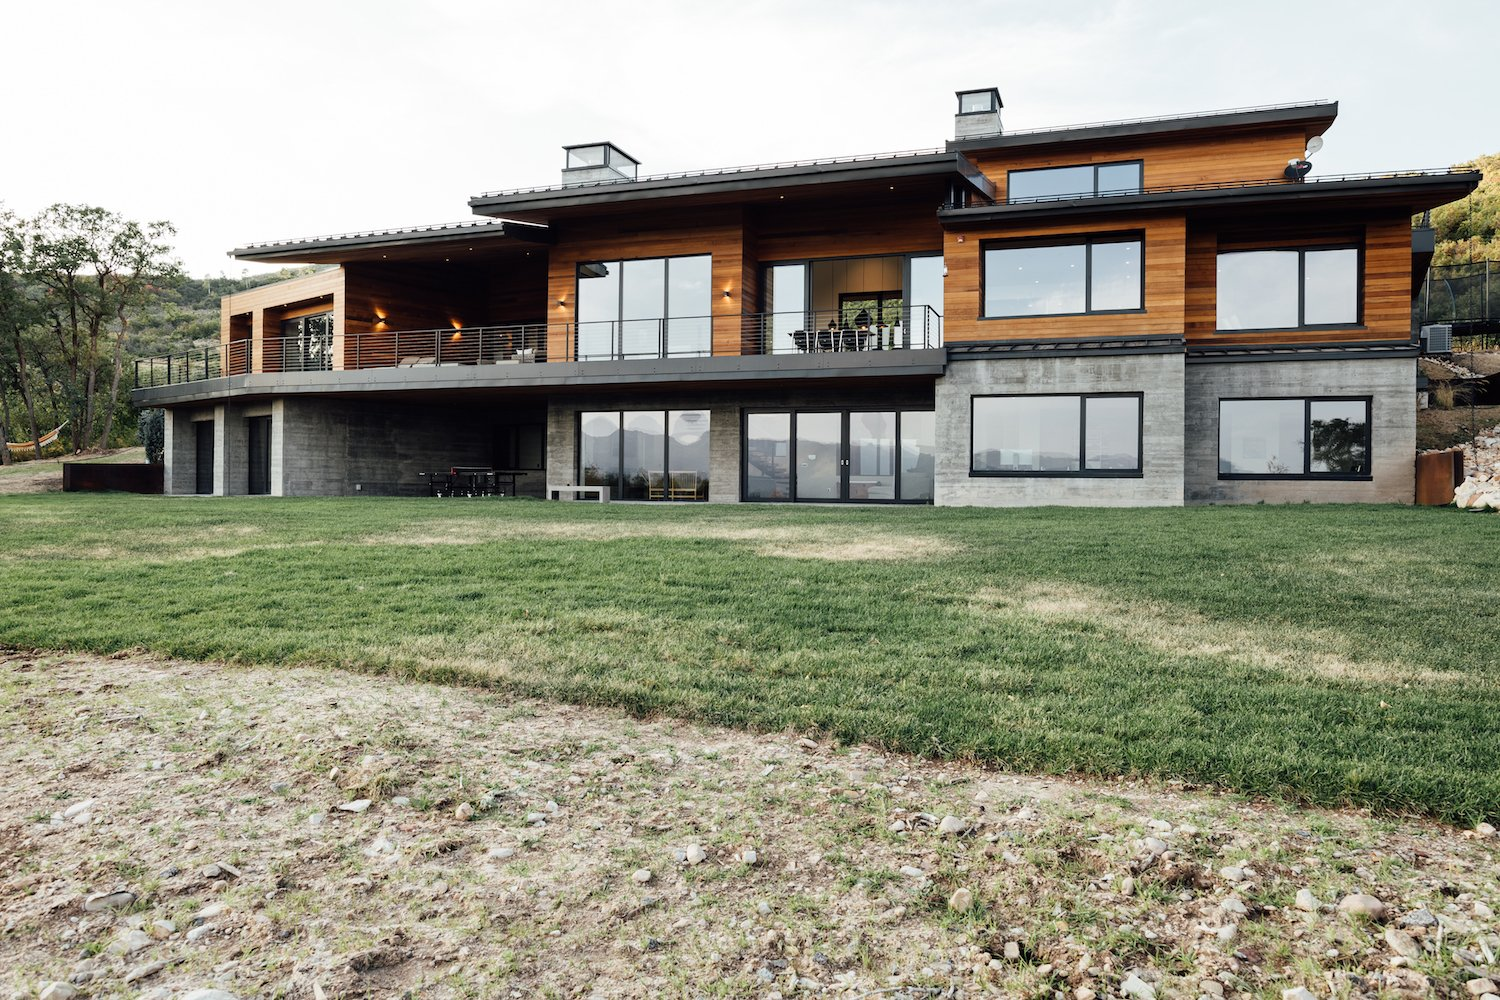 "Exterior, Gable RoofLine, Wood Siding Material, Metal Roof Material, Shed RoofLine, House Building Type, Flat RoofLine, and Concrete Siding Material ""It is so beautiful around here with the wildlife and the vegetation—the less disturbed, the better,"" says Axboe.   Best Photos from An Interior Designer's Utah Abode Blends Mountain Living With Scandinavian Style"